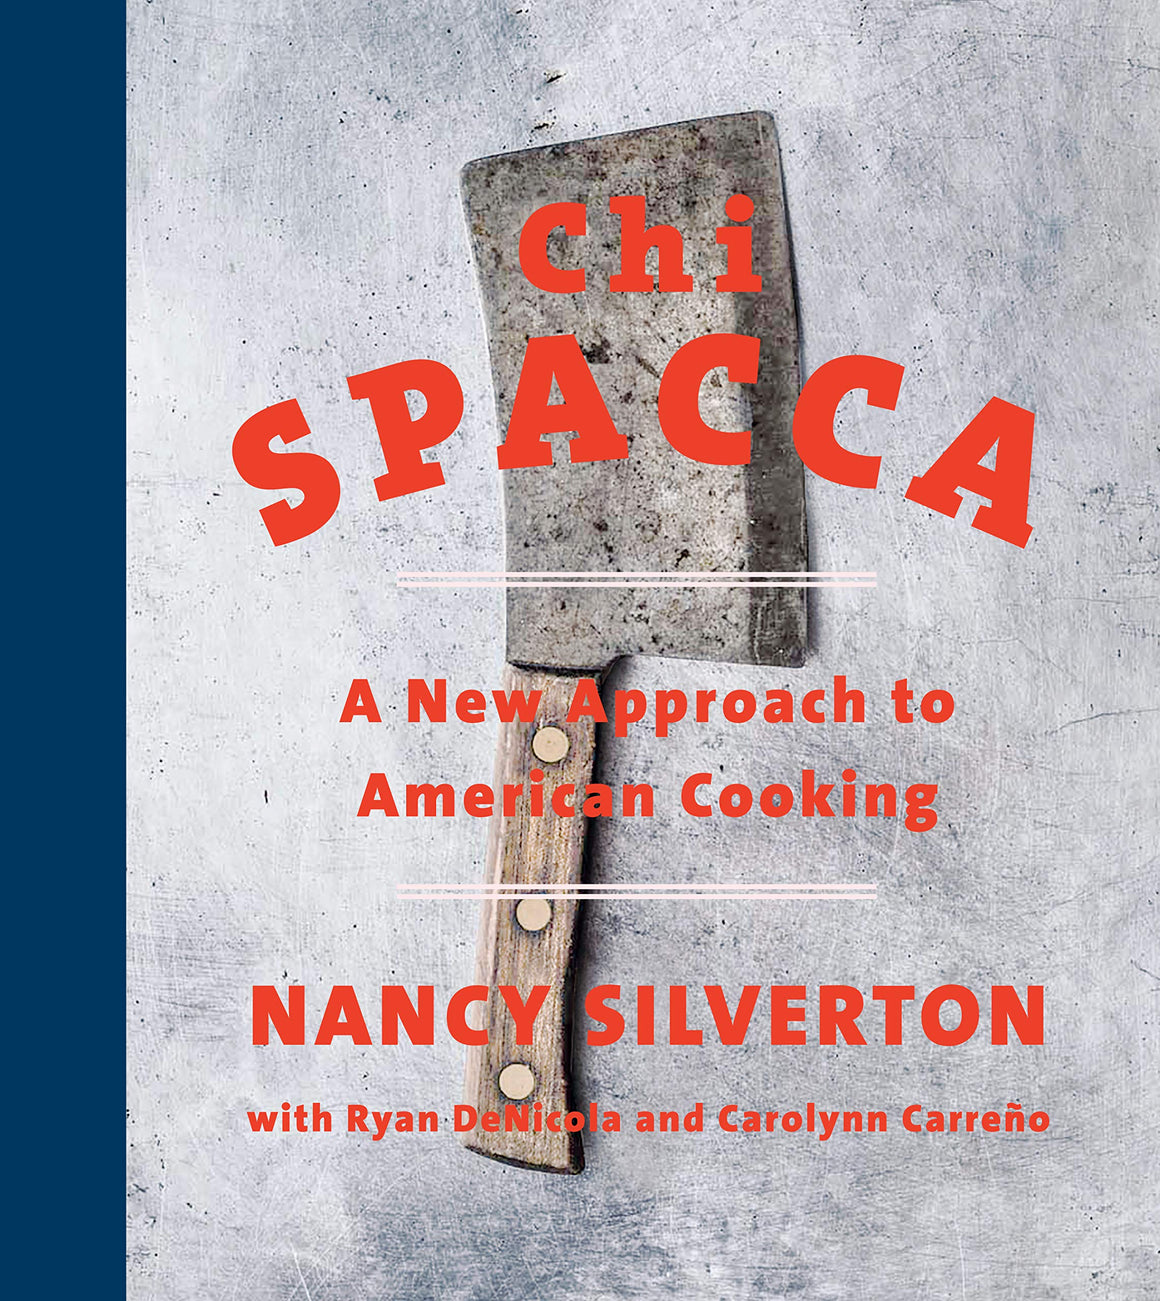 PRE-ORDER! Nancy Silverton. Chi Spacca: A New Approach to American Cooking. Expected: October 2020.